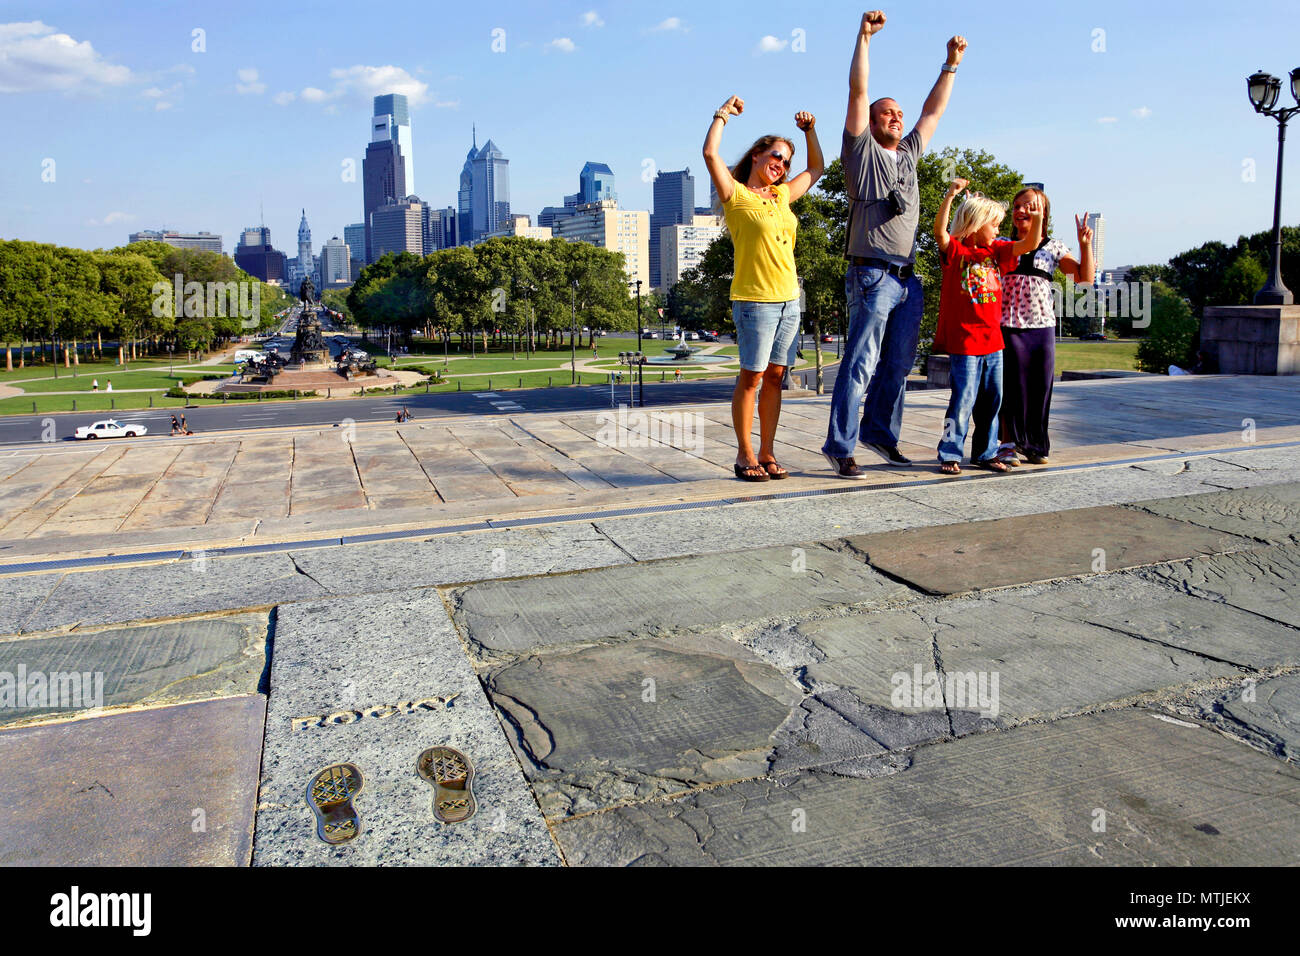 Family posing next to the footprints of Sylvester Stallone at the Rocky Steps - made famous in the movie Rocky Balboa, Philadelphia, Pennsylvania, USA - Stock Image